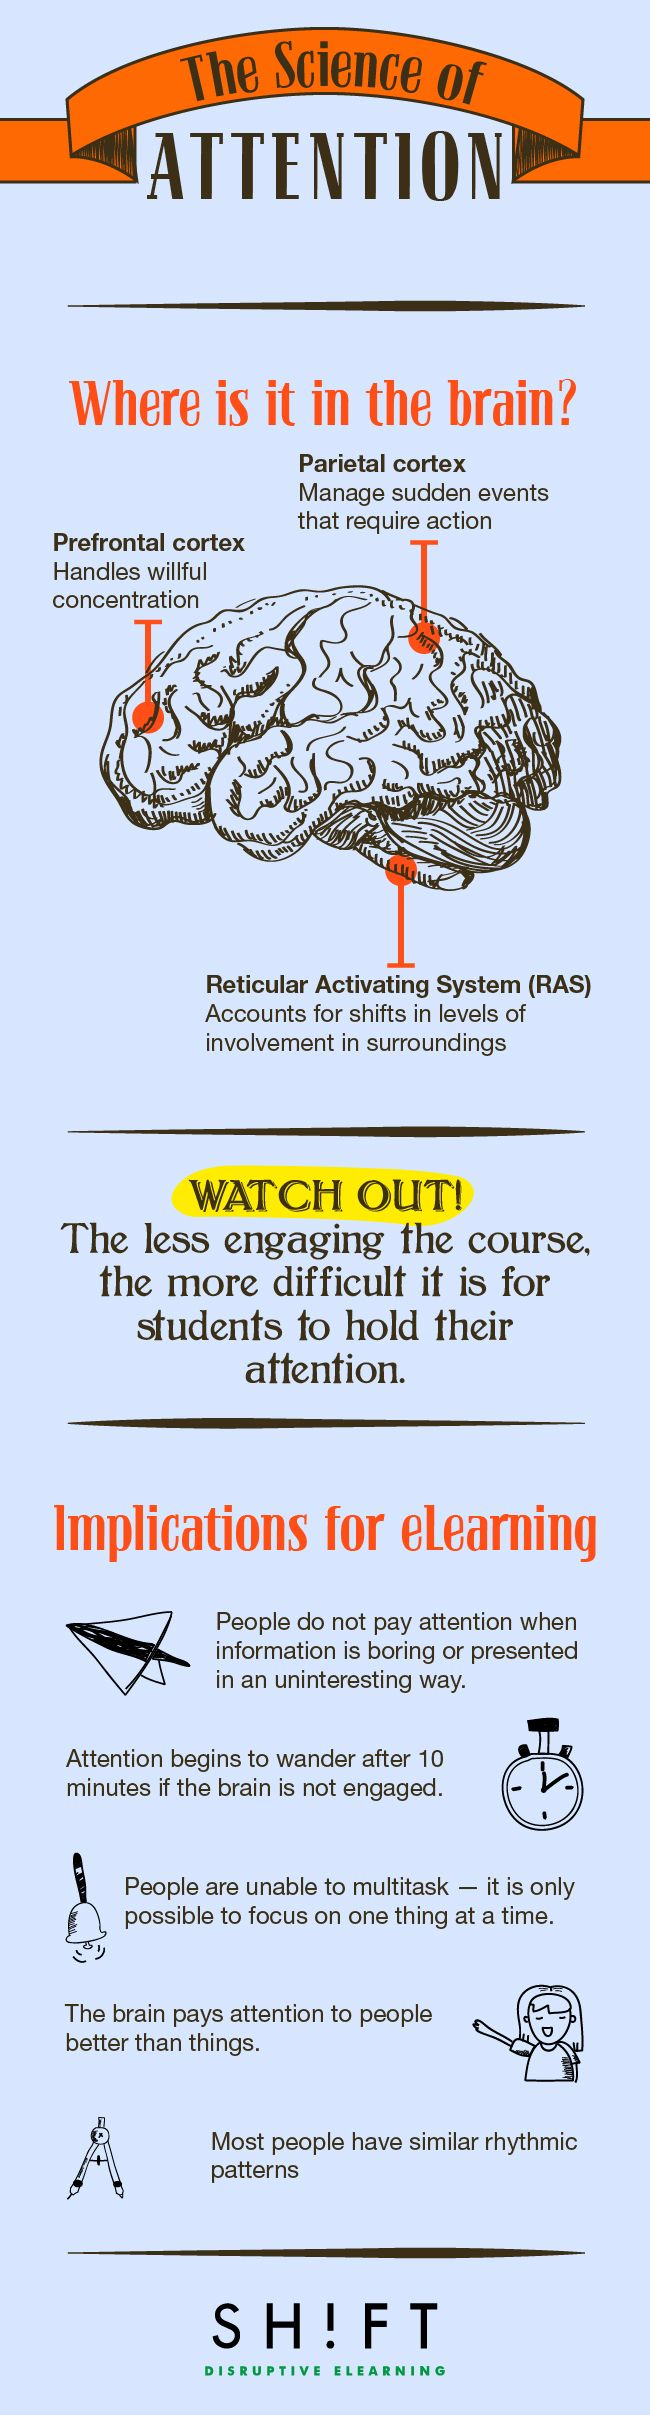 The Science of Attention in eLearning Infographic - http://elearninginfographics.com/science-attention-elearning-infographic/